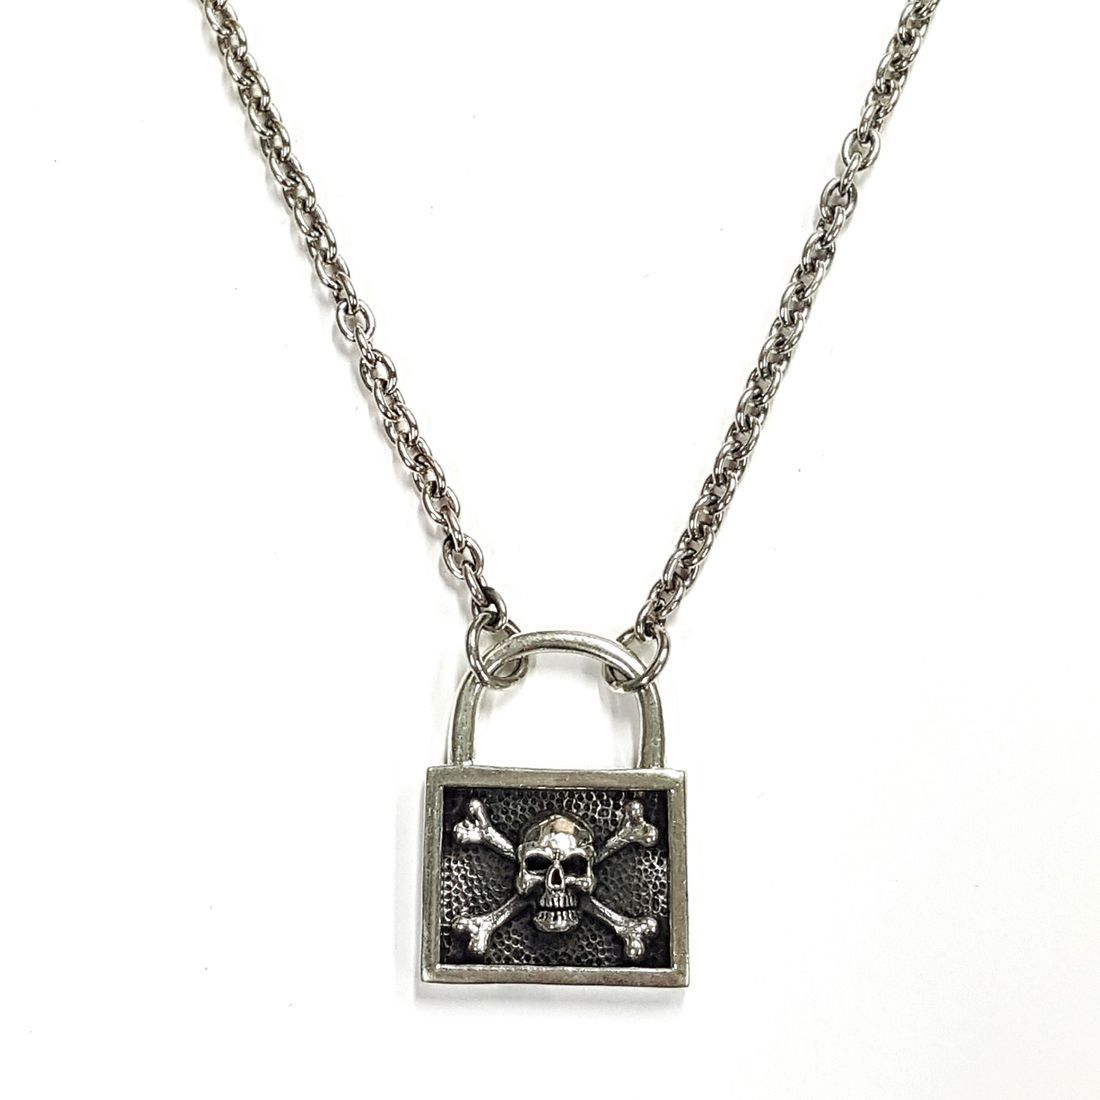 Solid Silver Skull & Cross Bones padlock Chain  available at Kazbah online and our Leicester City Centre Shop